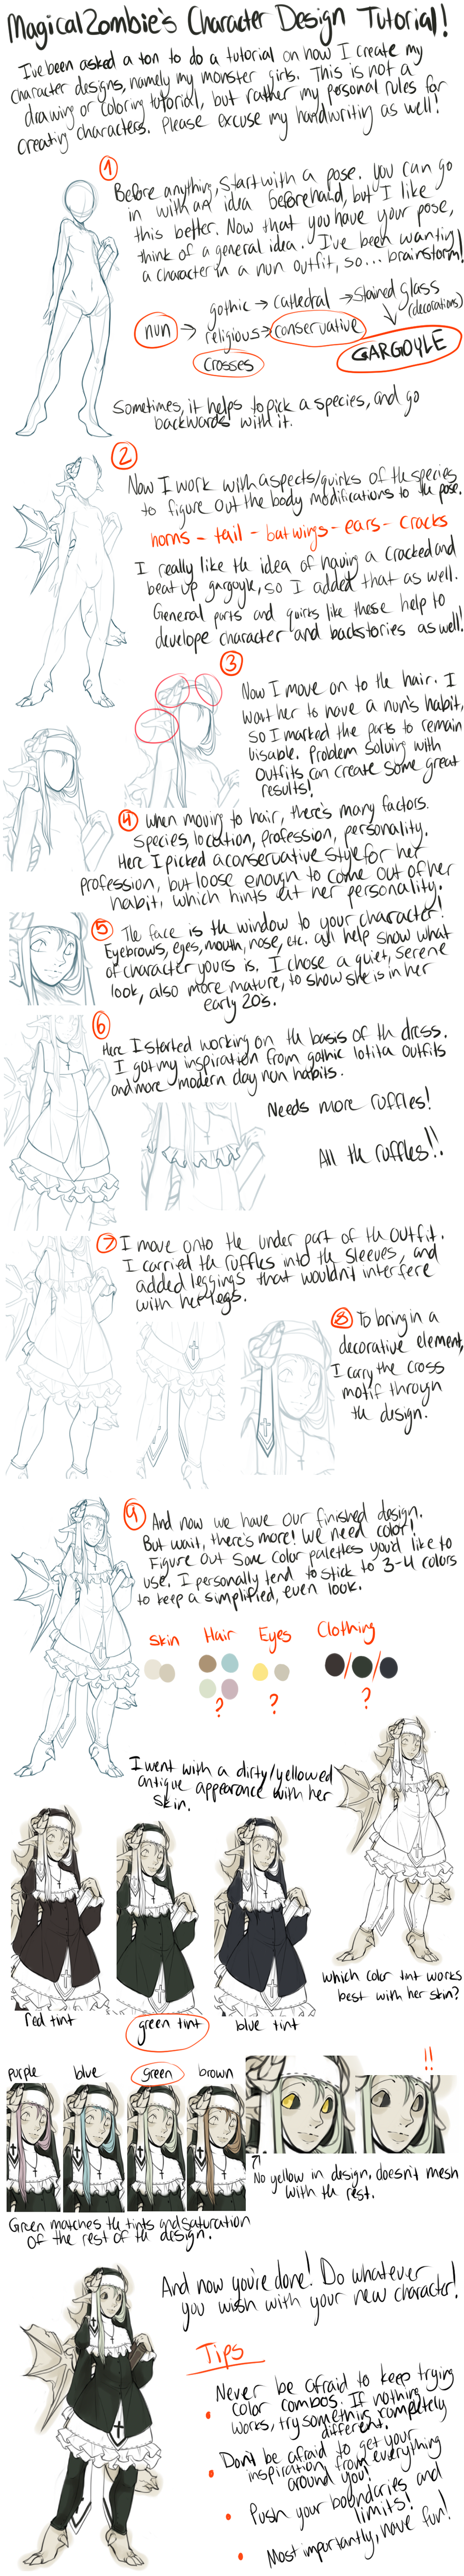 Character Design Tutorials : Character design tutorial by magicalzombie on deviantart